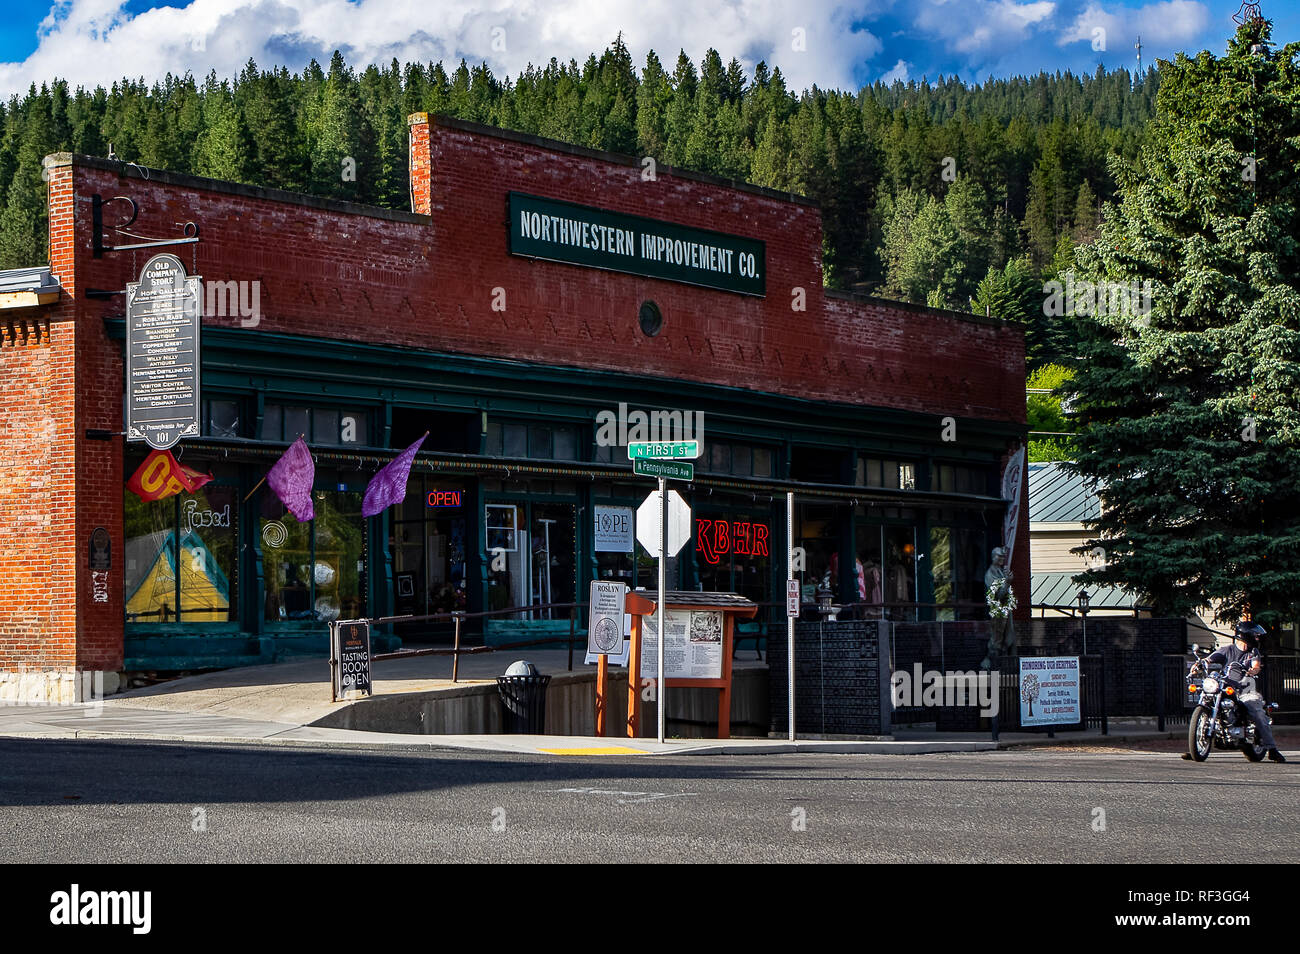 Downtown Roslyn, Washington State, USA - Stock Image